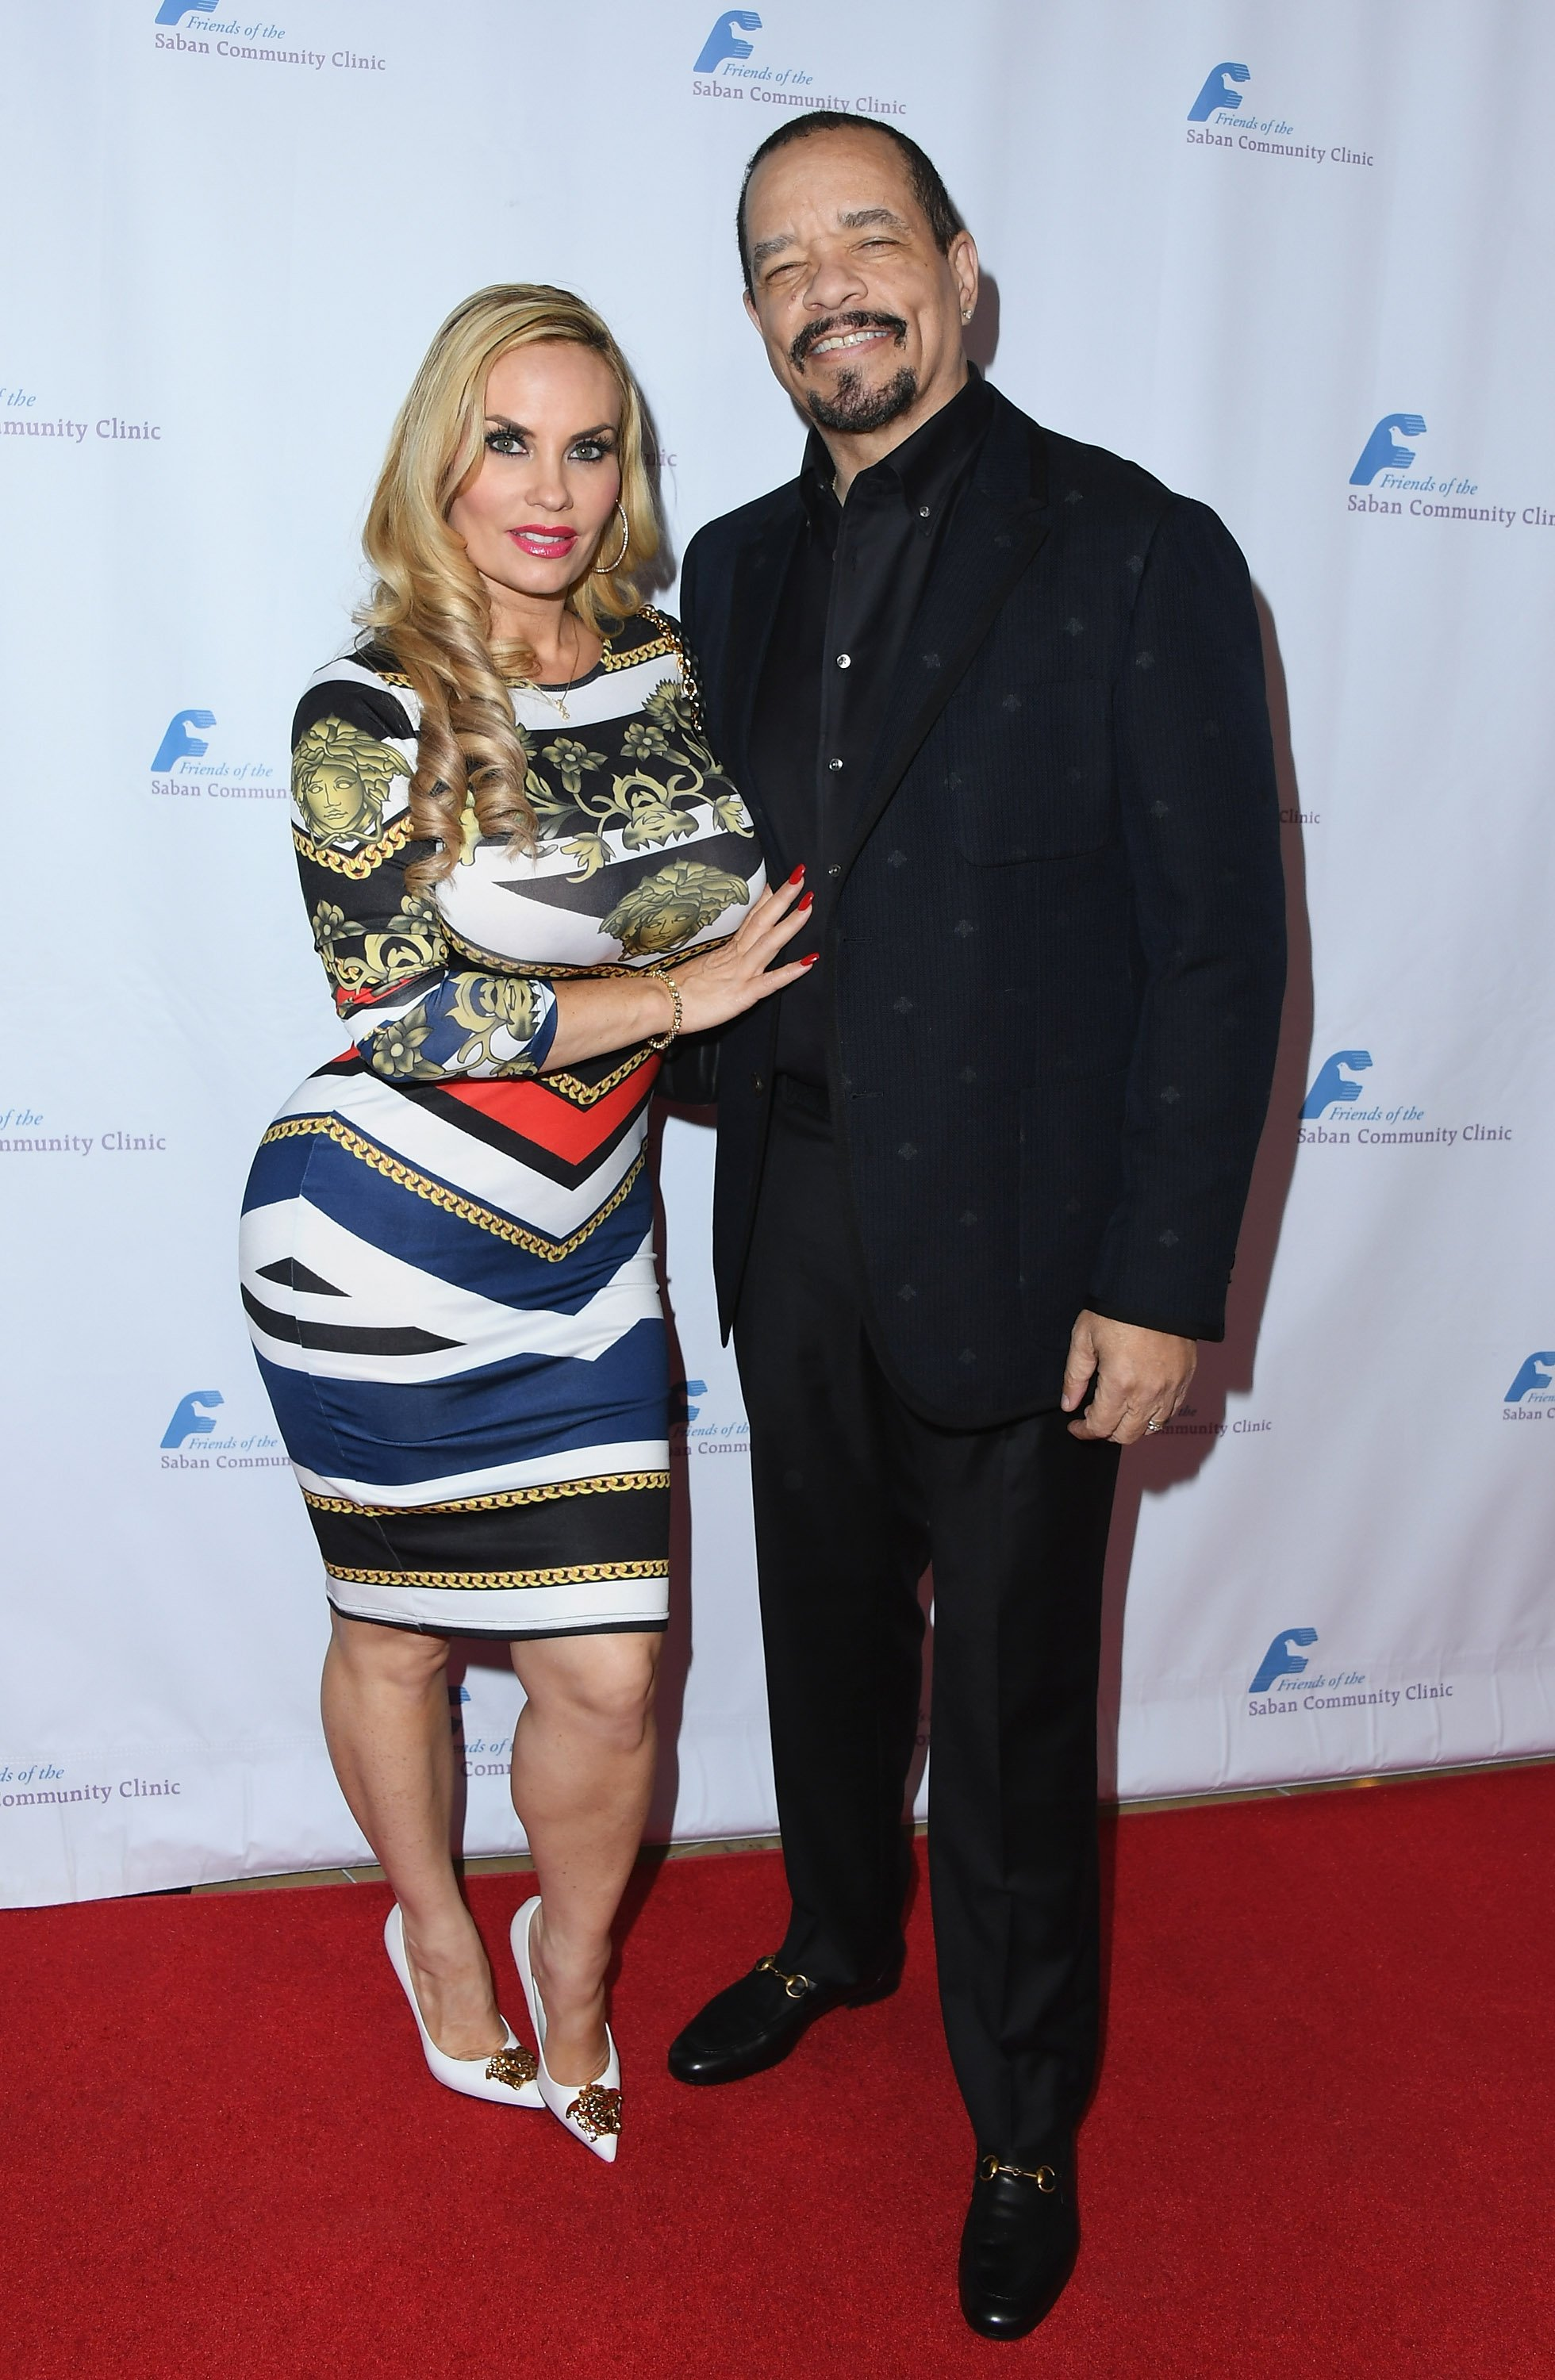 Coco Austin and Ice-T attend Friends Of The Saban Community Clinic's 42nd Annual Gala on November 12, 2018 in Beverly Hills, California. | Source: Getty Images